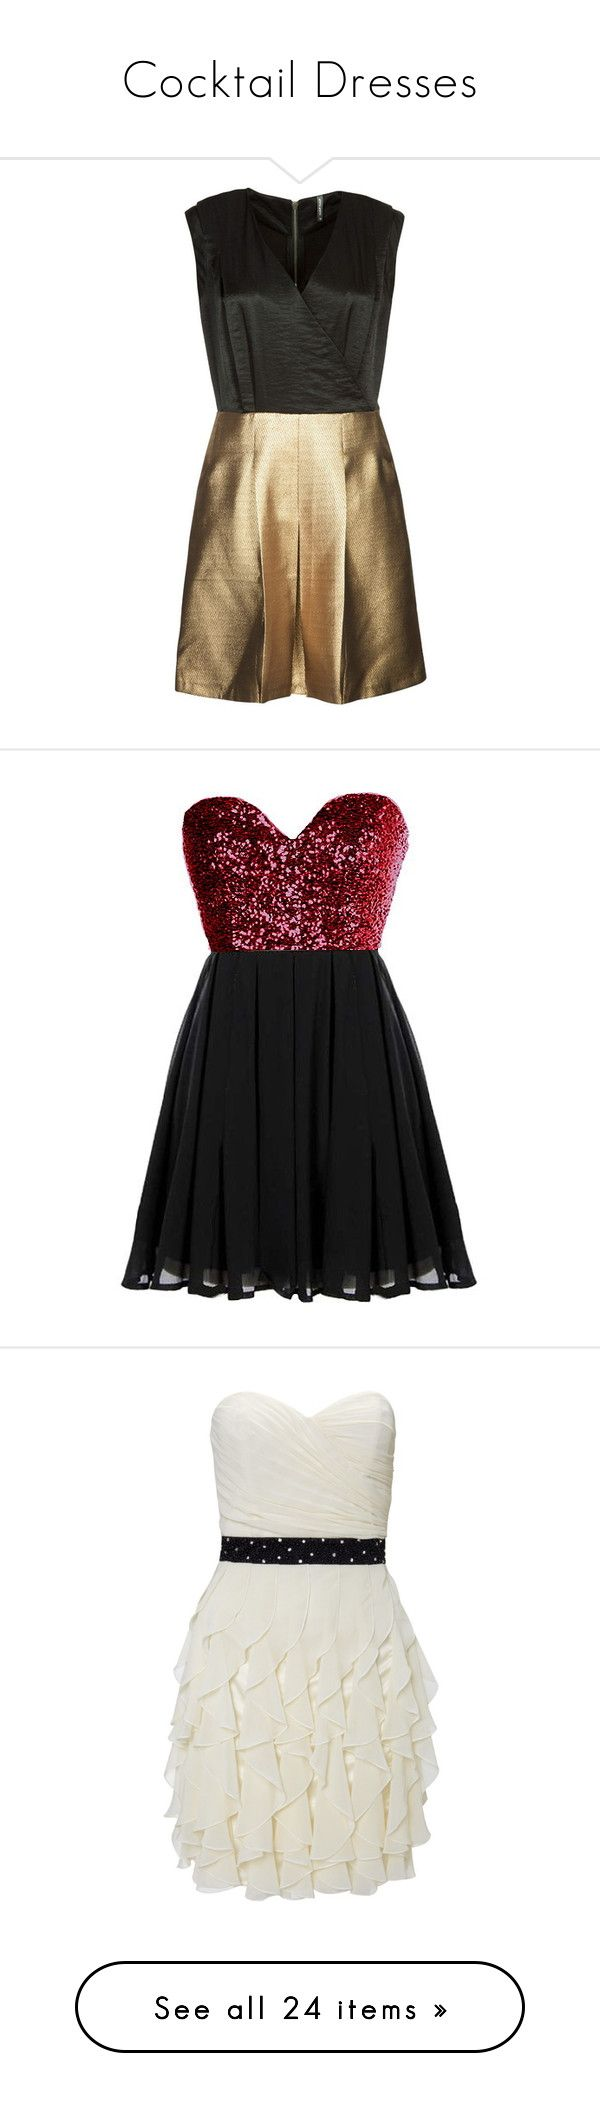 """Cocktail Dresses"" by vladakrut ❤ liked on Polyvore featuring dresses, vestidos, jumpsuits, playsuits, gold, naf naf, short dresses, robe, red sequin dress and red sparkly dress"